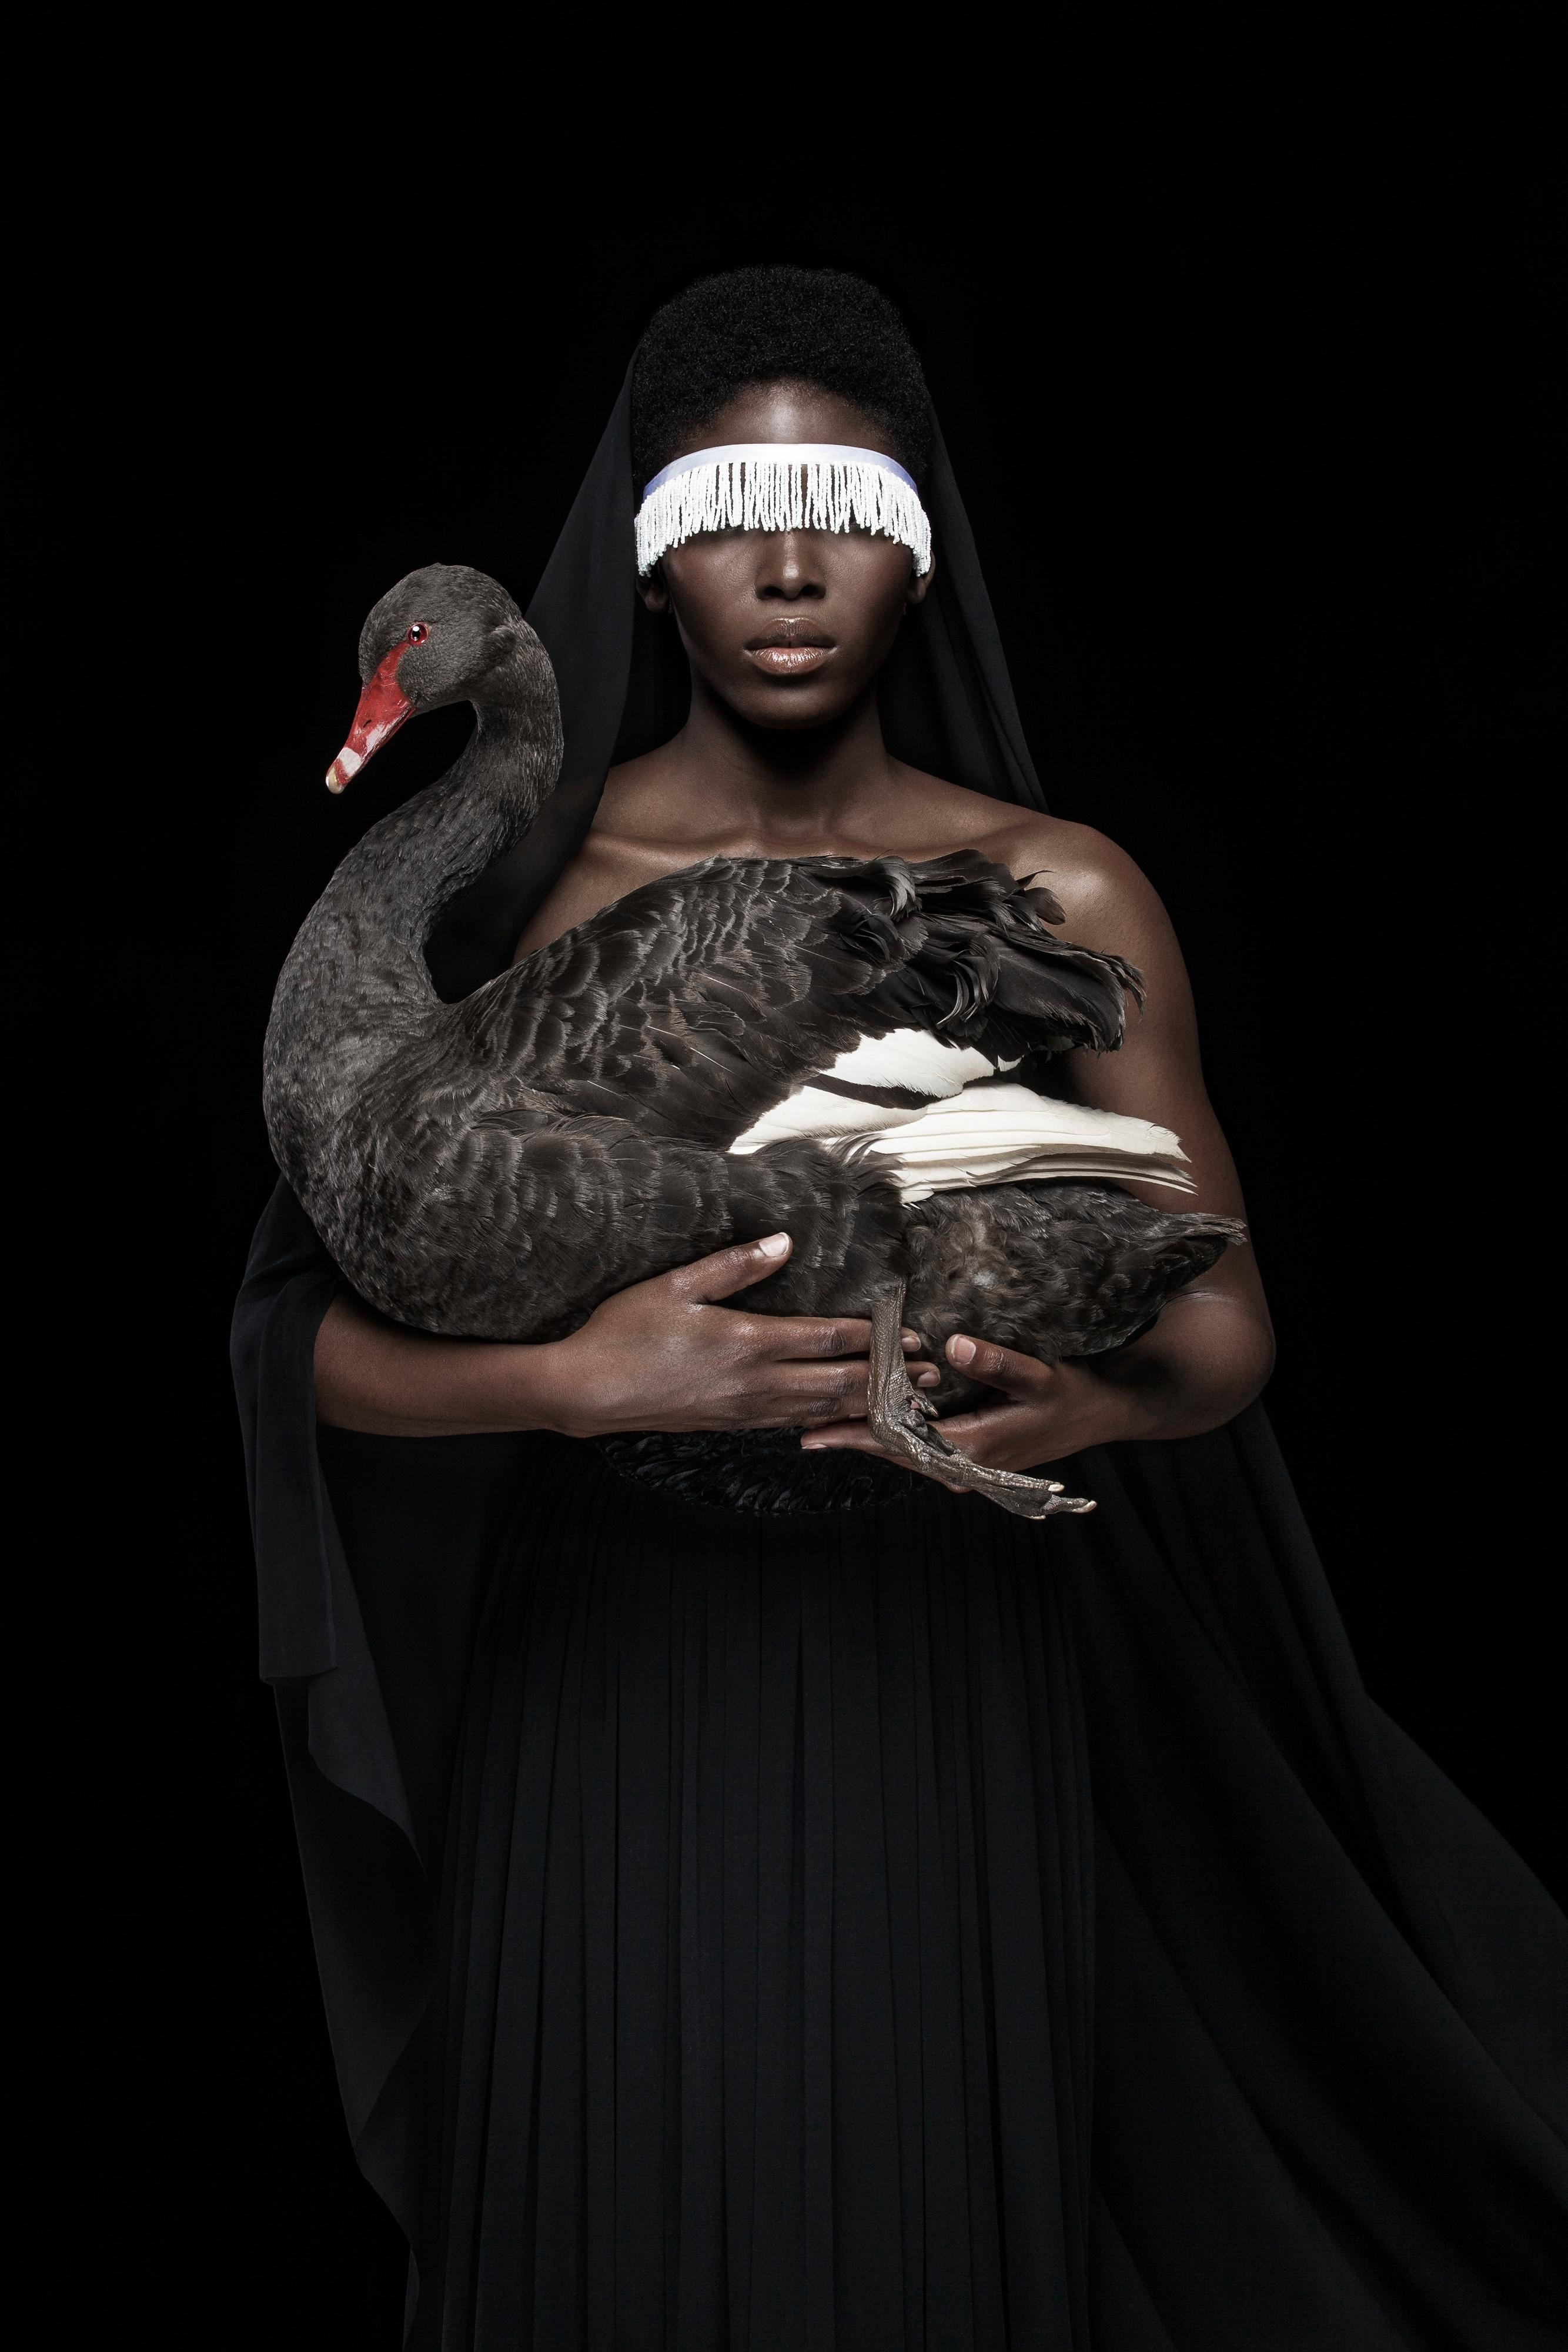 'This is not a black swan', Photographic gliclée print on 100% cotton art paper